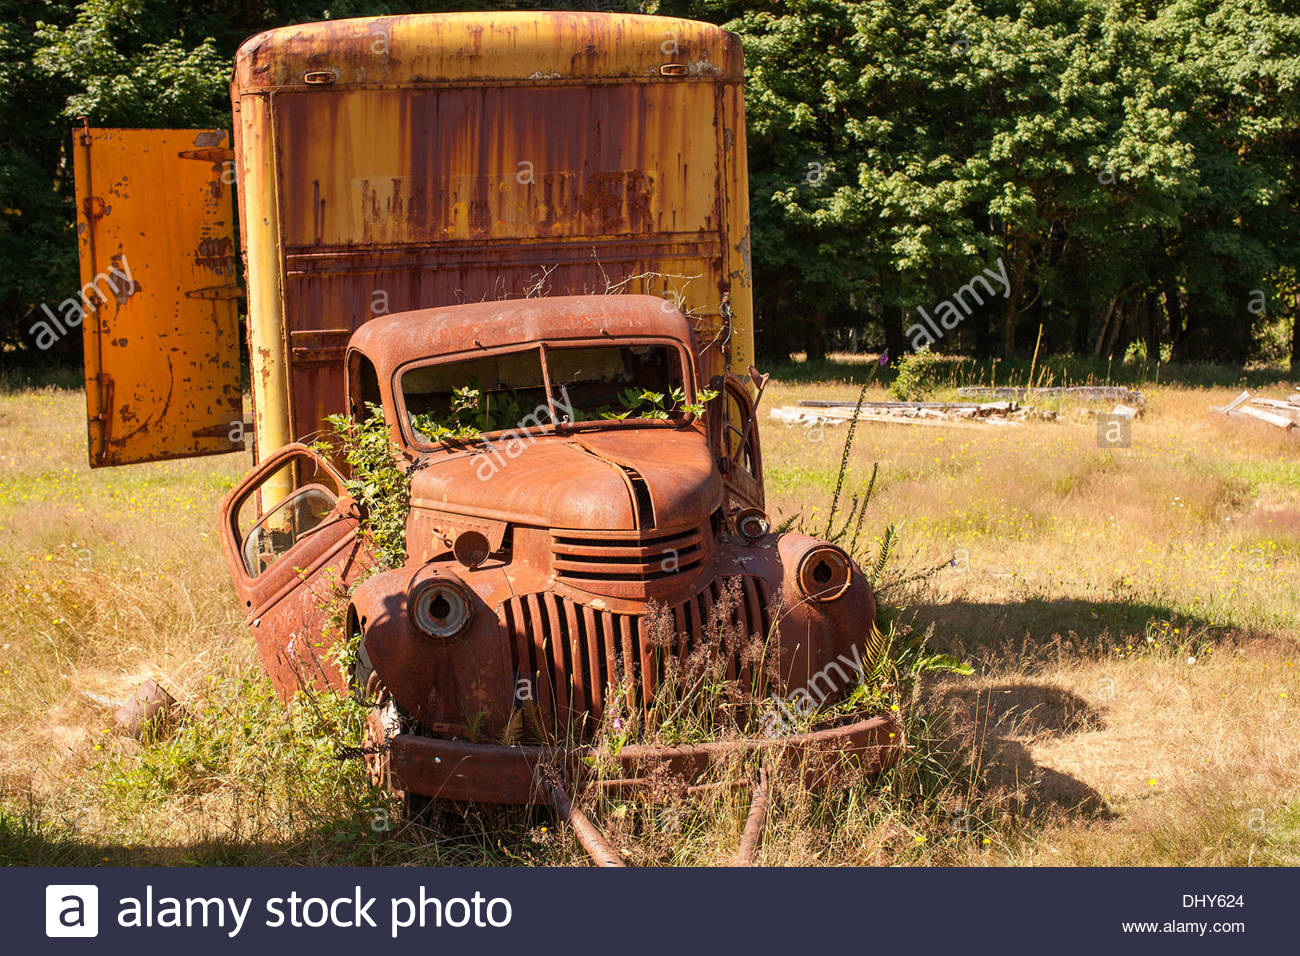 Old rusted out box truck abandoned in a field Stock Photo: 62677724 ...